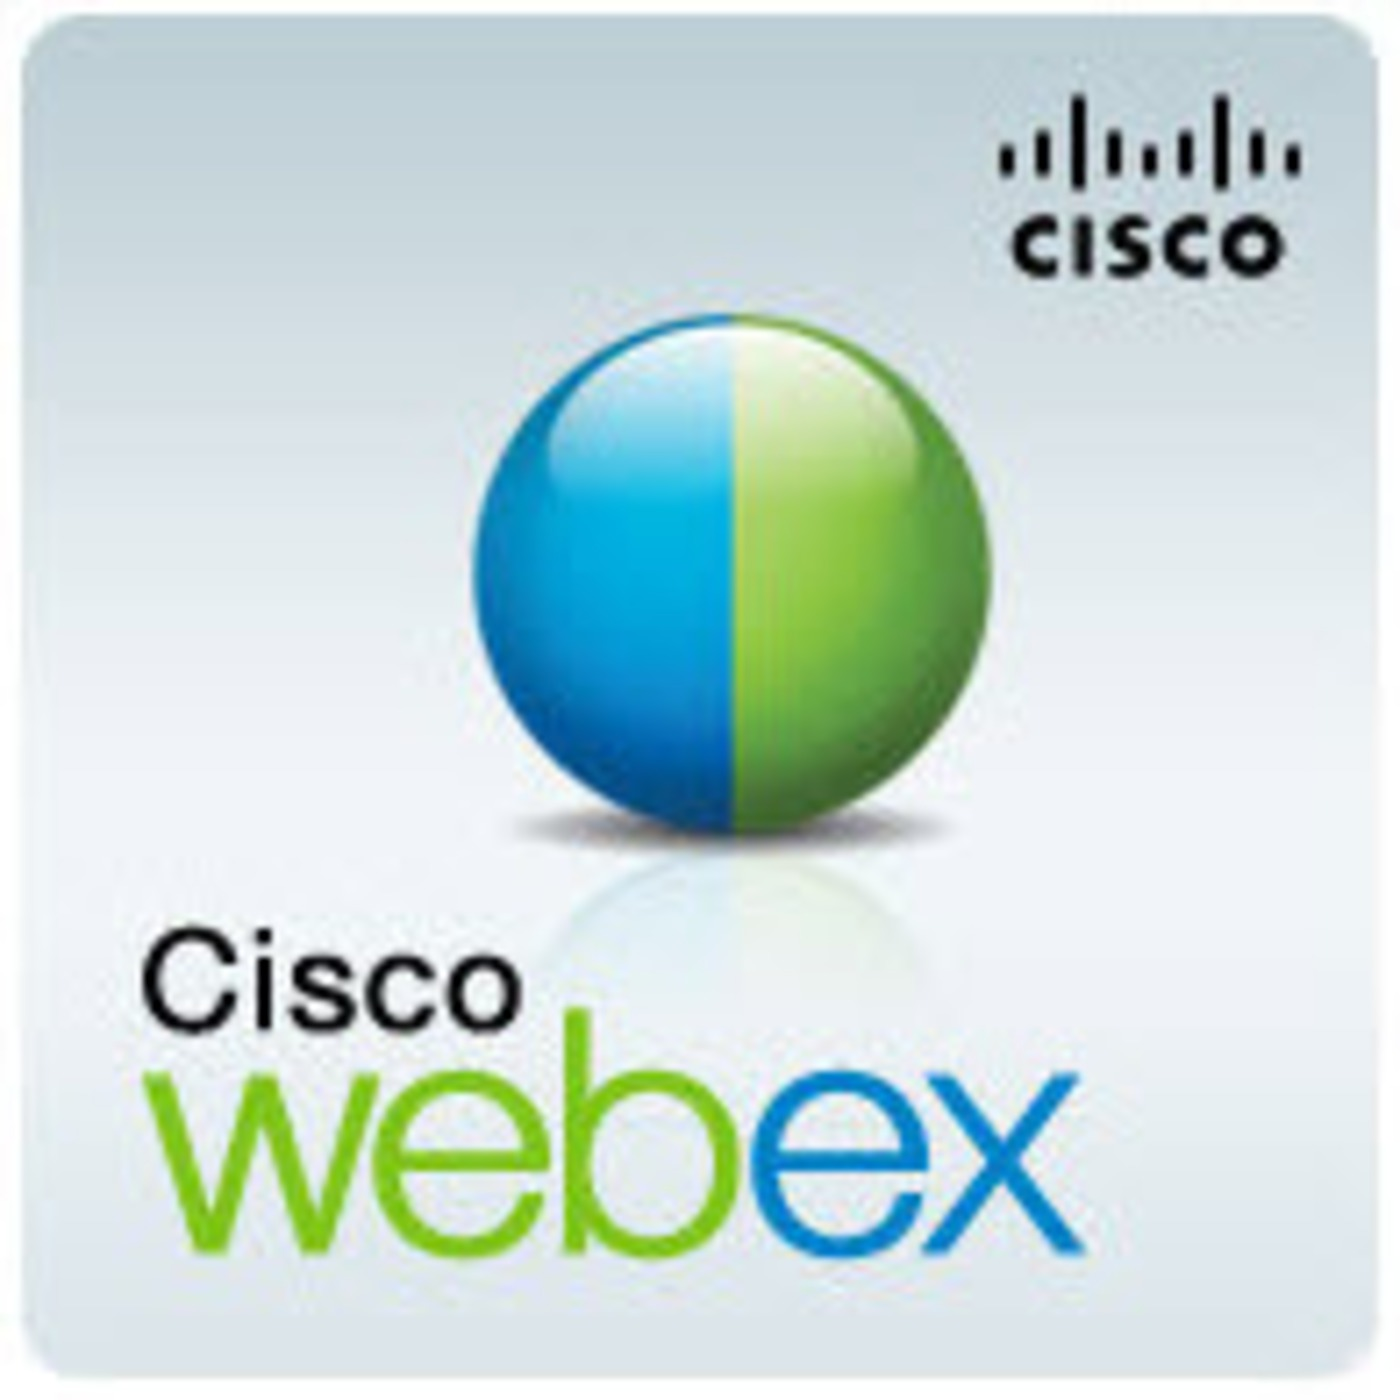 Together@Webex